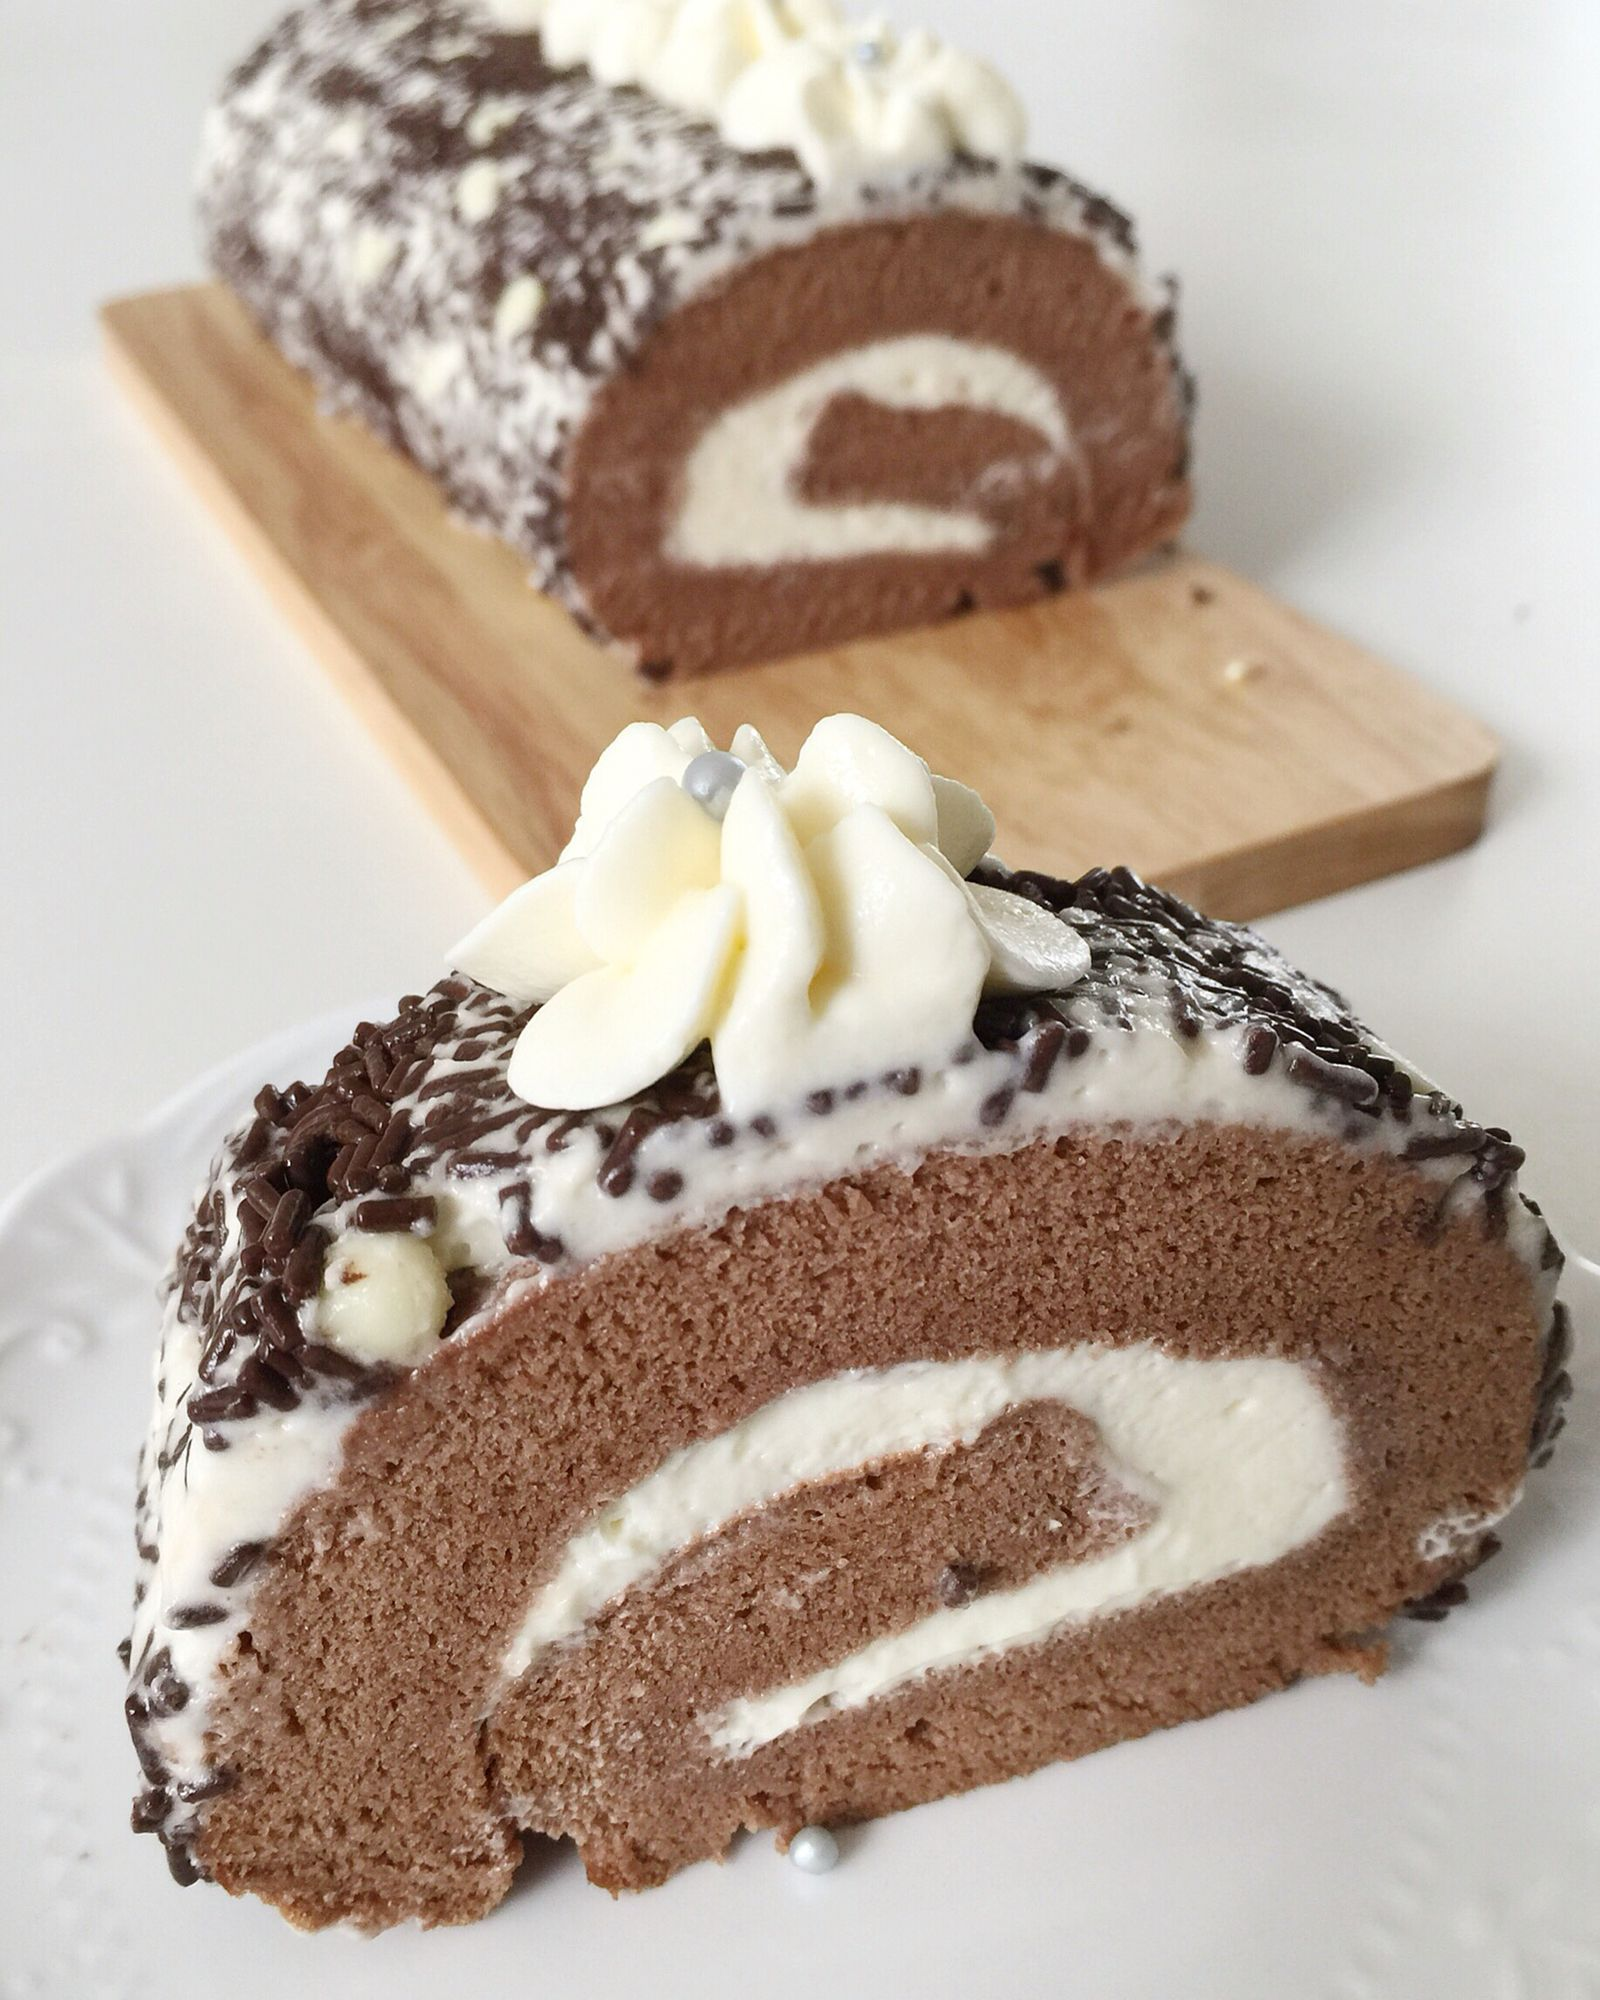 Old school chocolate swiss roll coated with chocolate rice